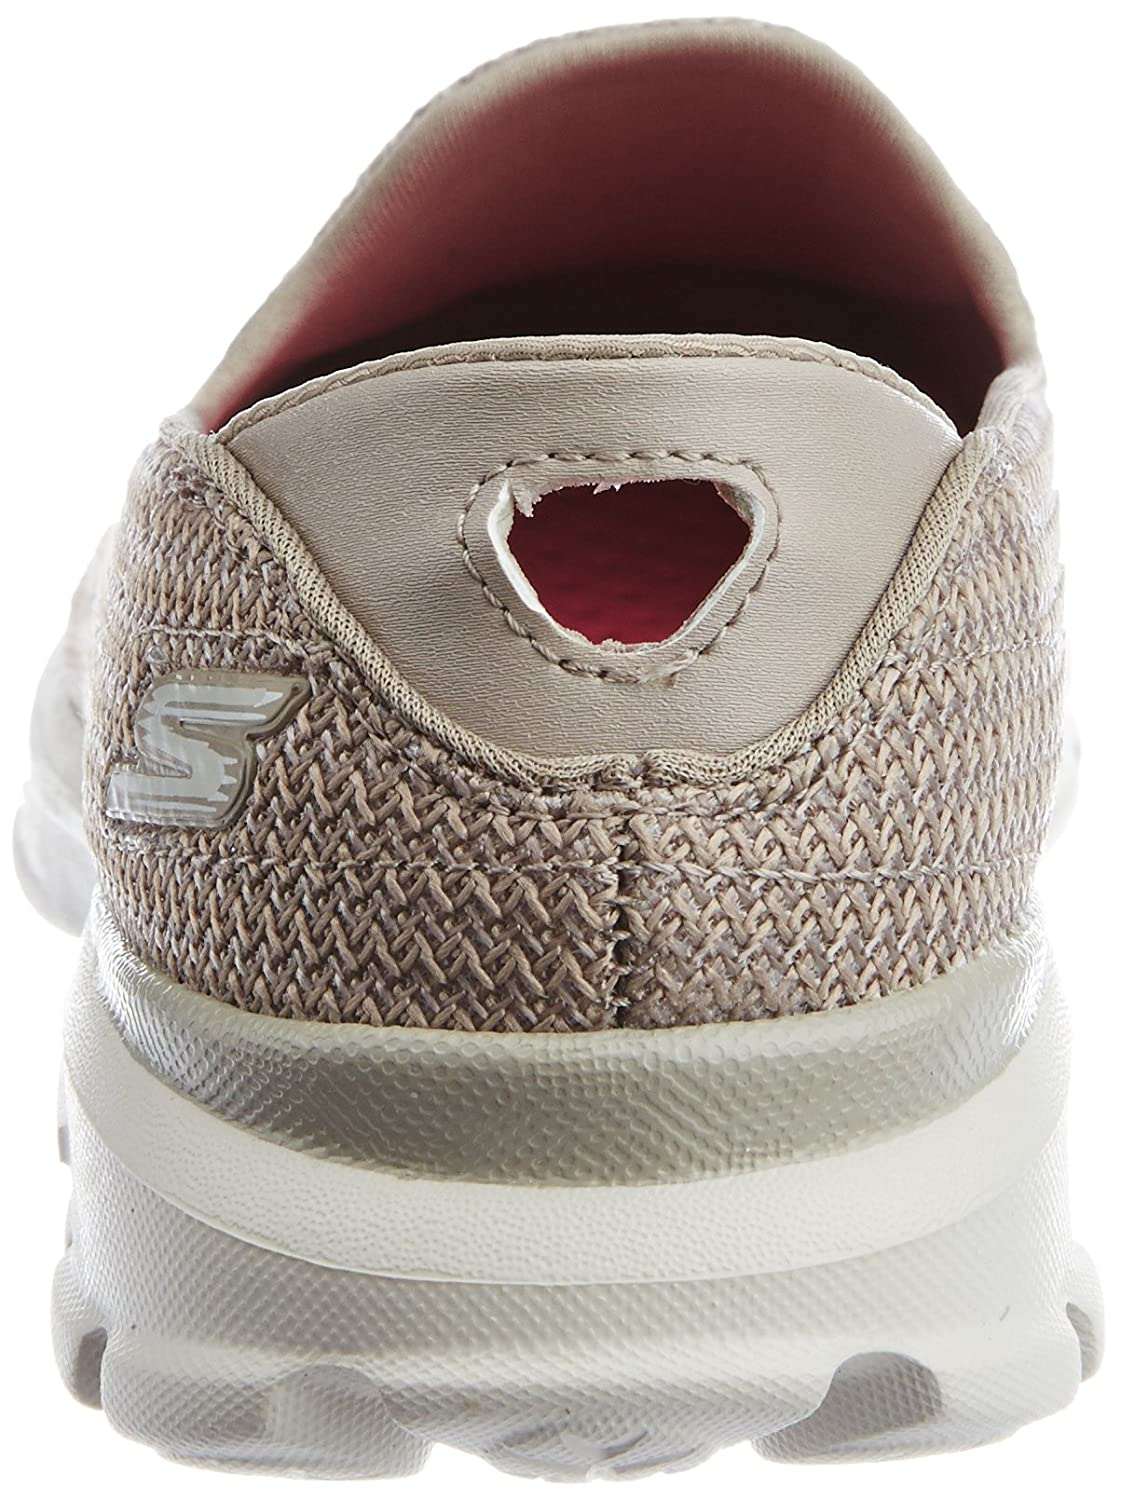 3 On Walk Slip Skechers Go Women's Performance nq0UHZ